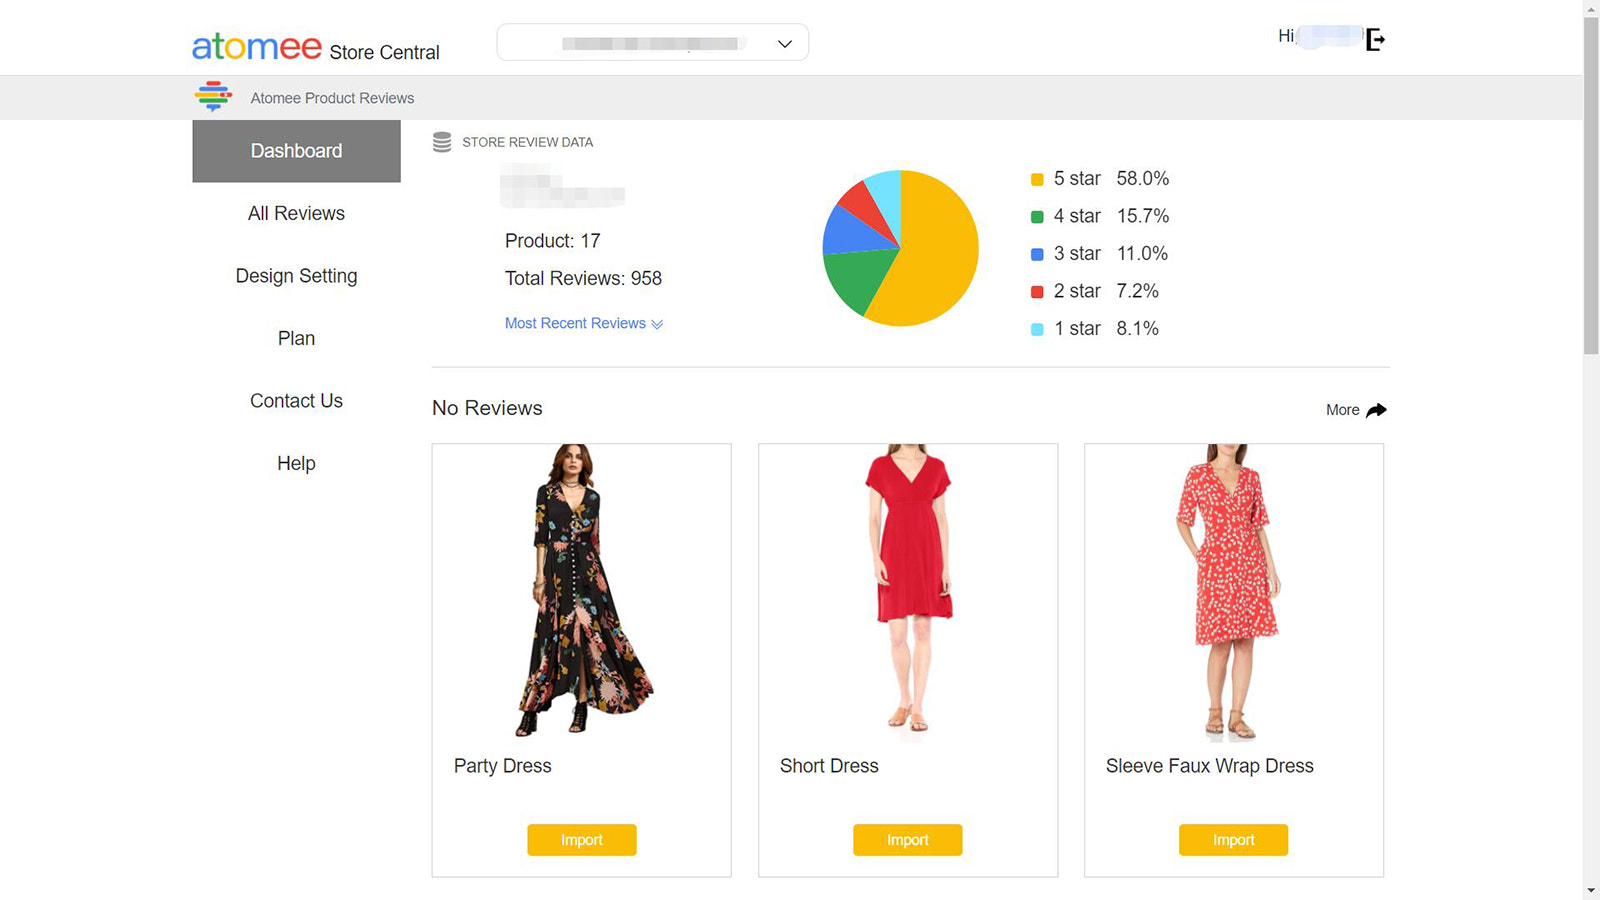 Atomee Product Reviews Dashboard